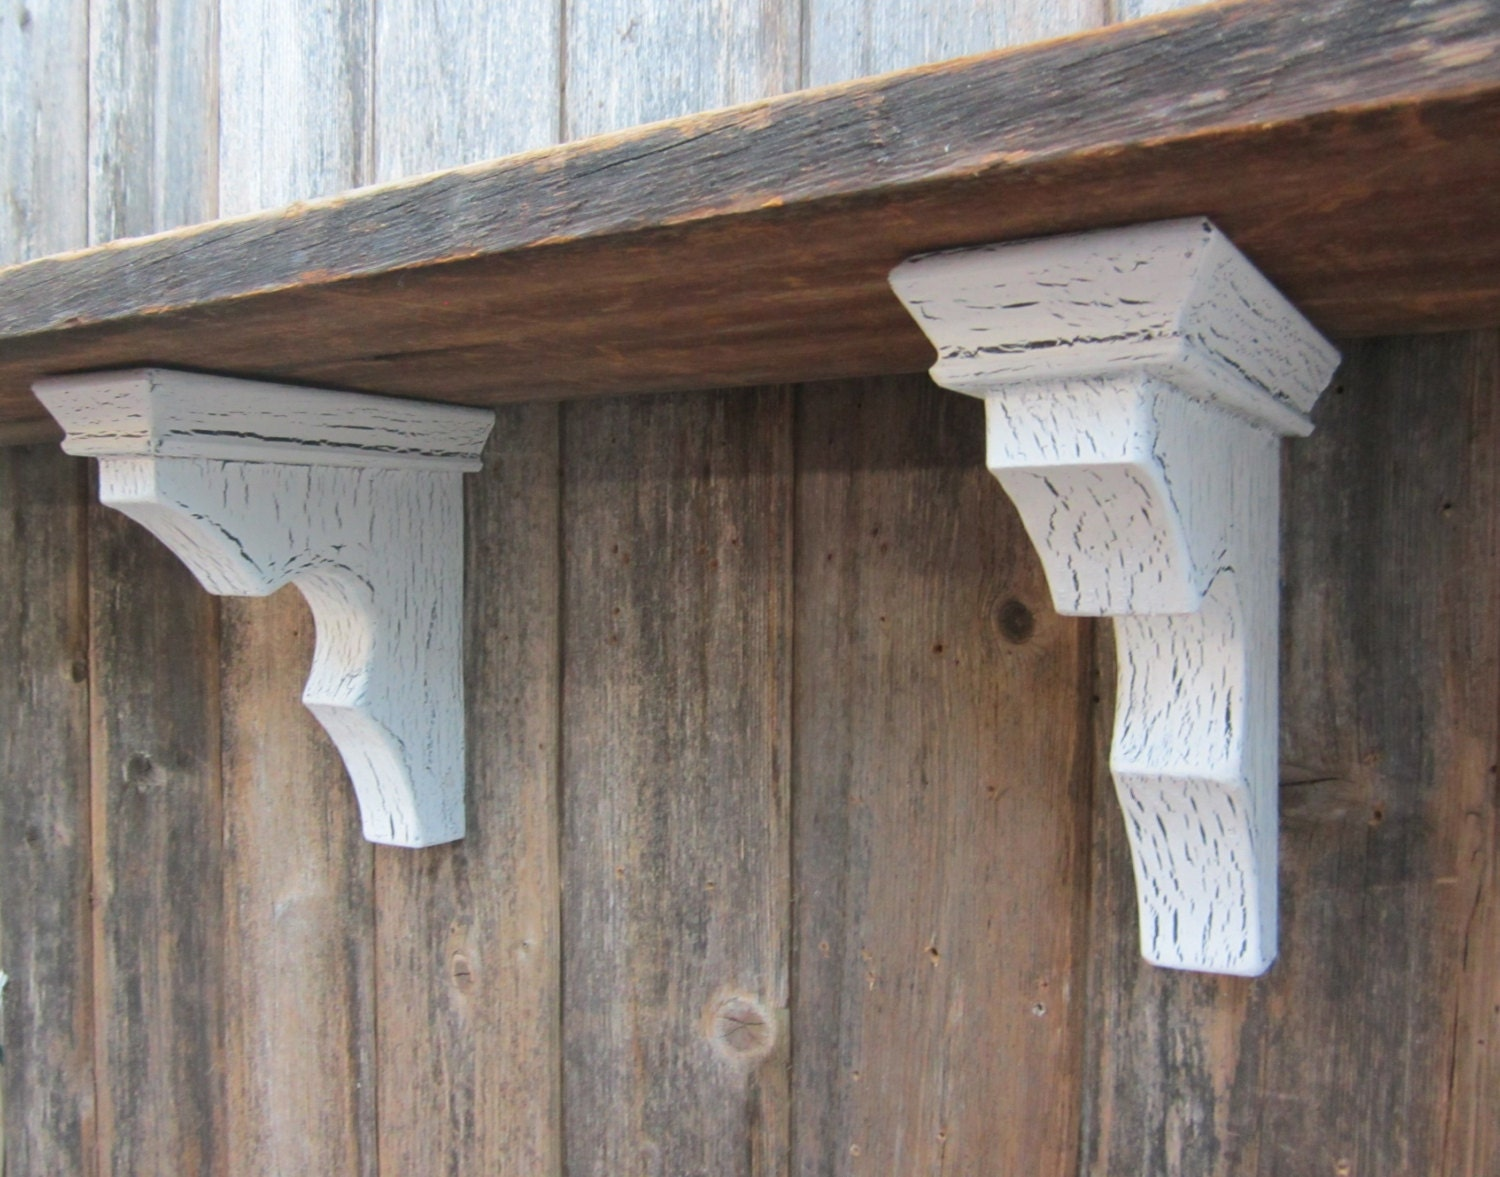 Wood corbel pair shelf bracket architectural reclaimed for Architectural corbels and brackets